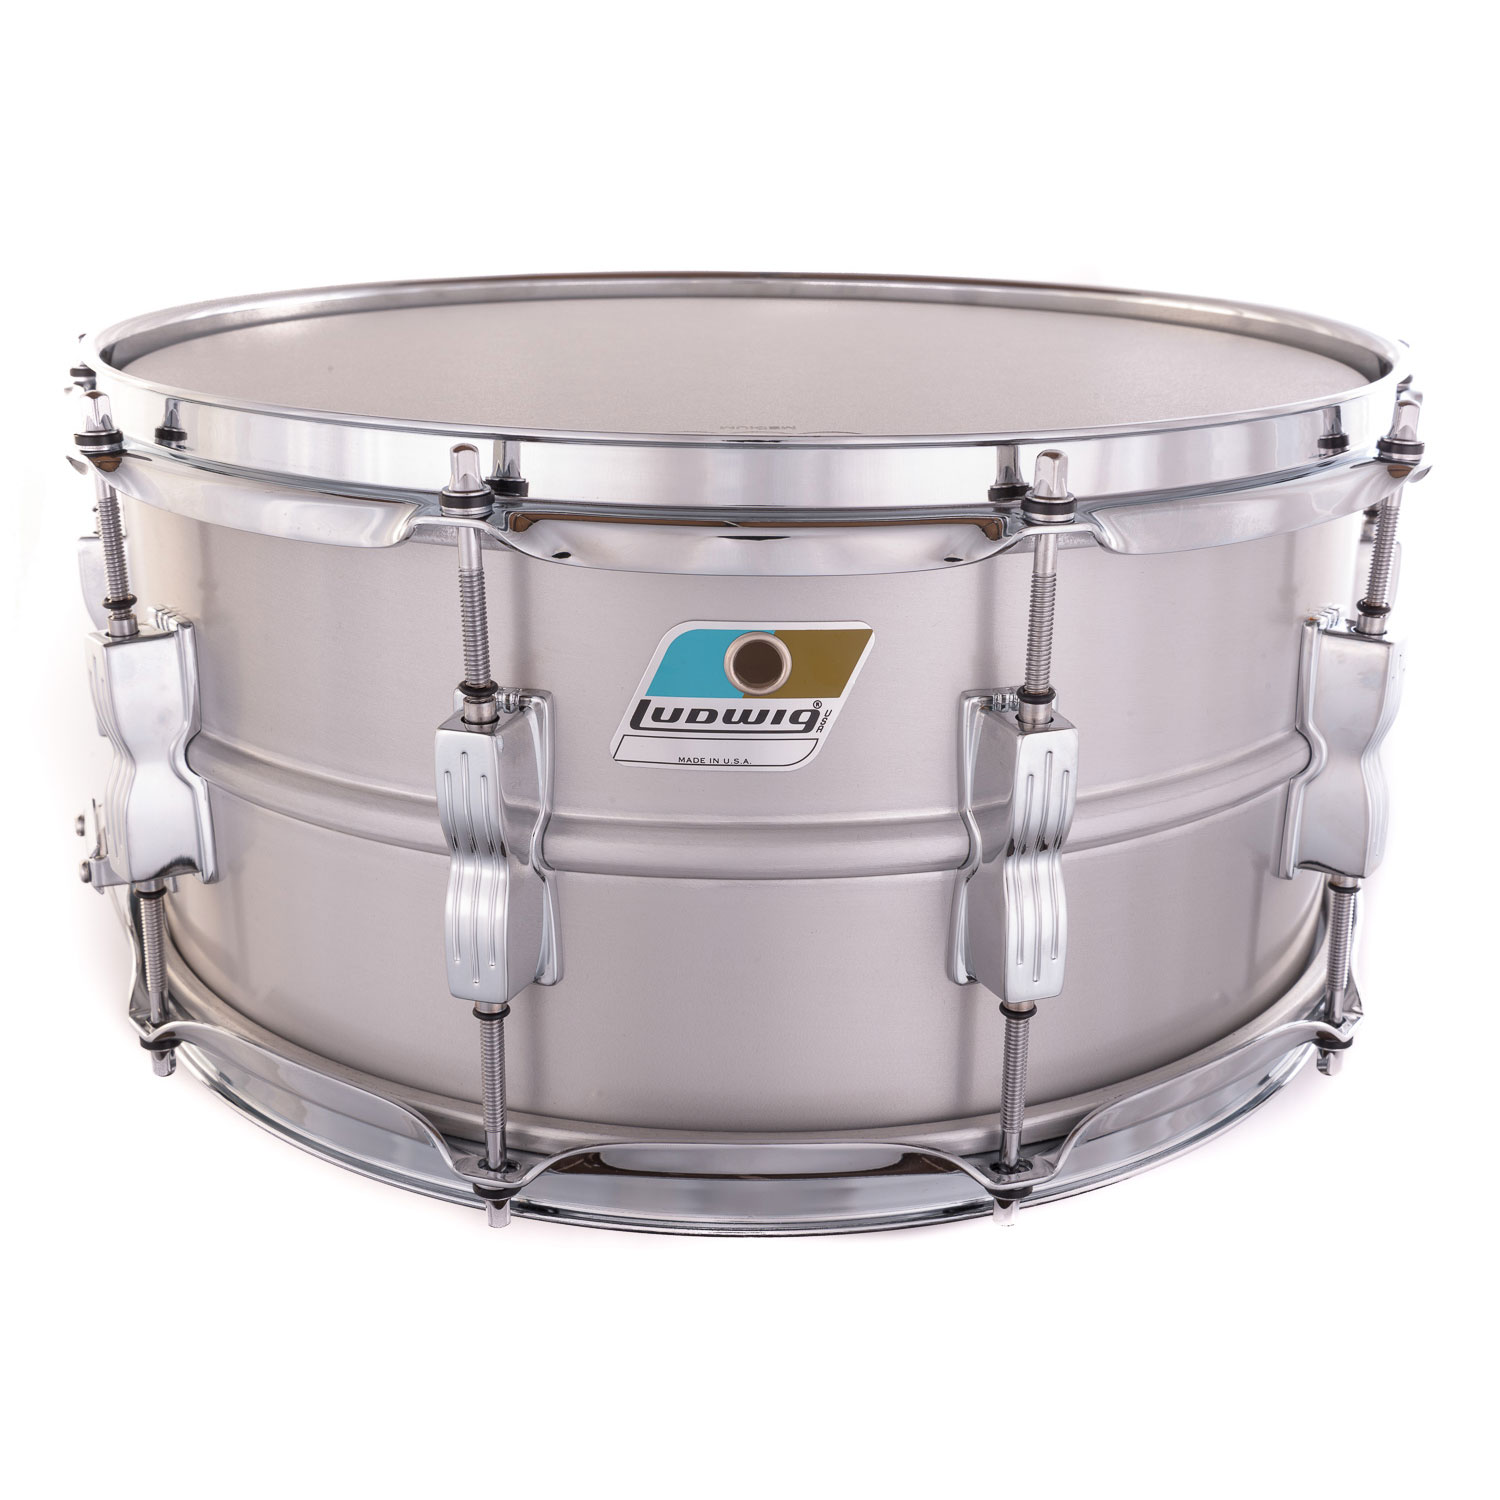 "Ludwig 6.5"" x 14"" Acrolite Classic Snare Drum"